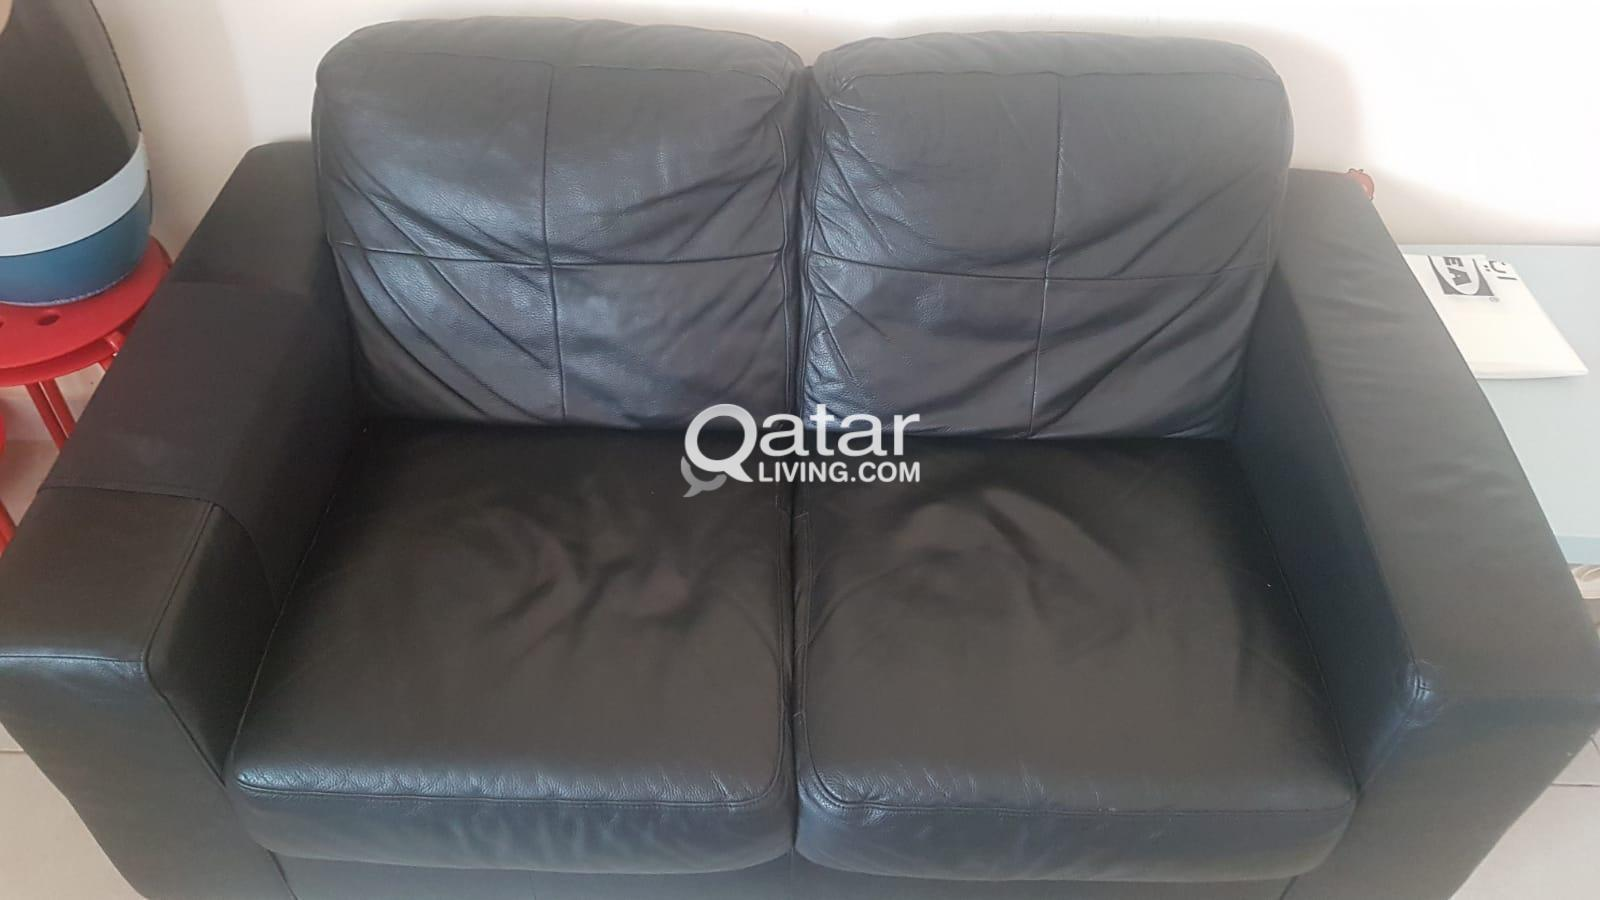 Ikea 2 seater leather sofa | Qatar Living